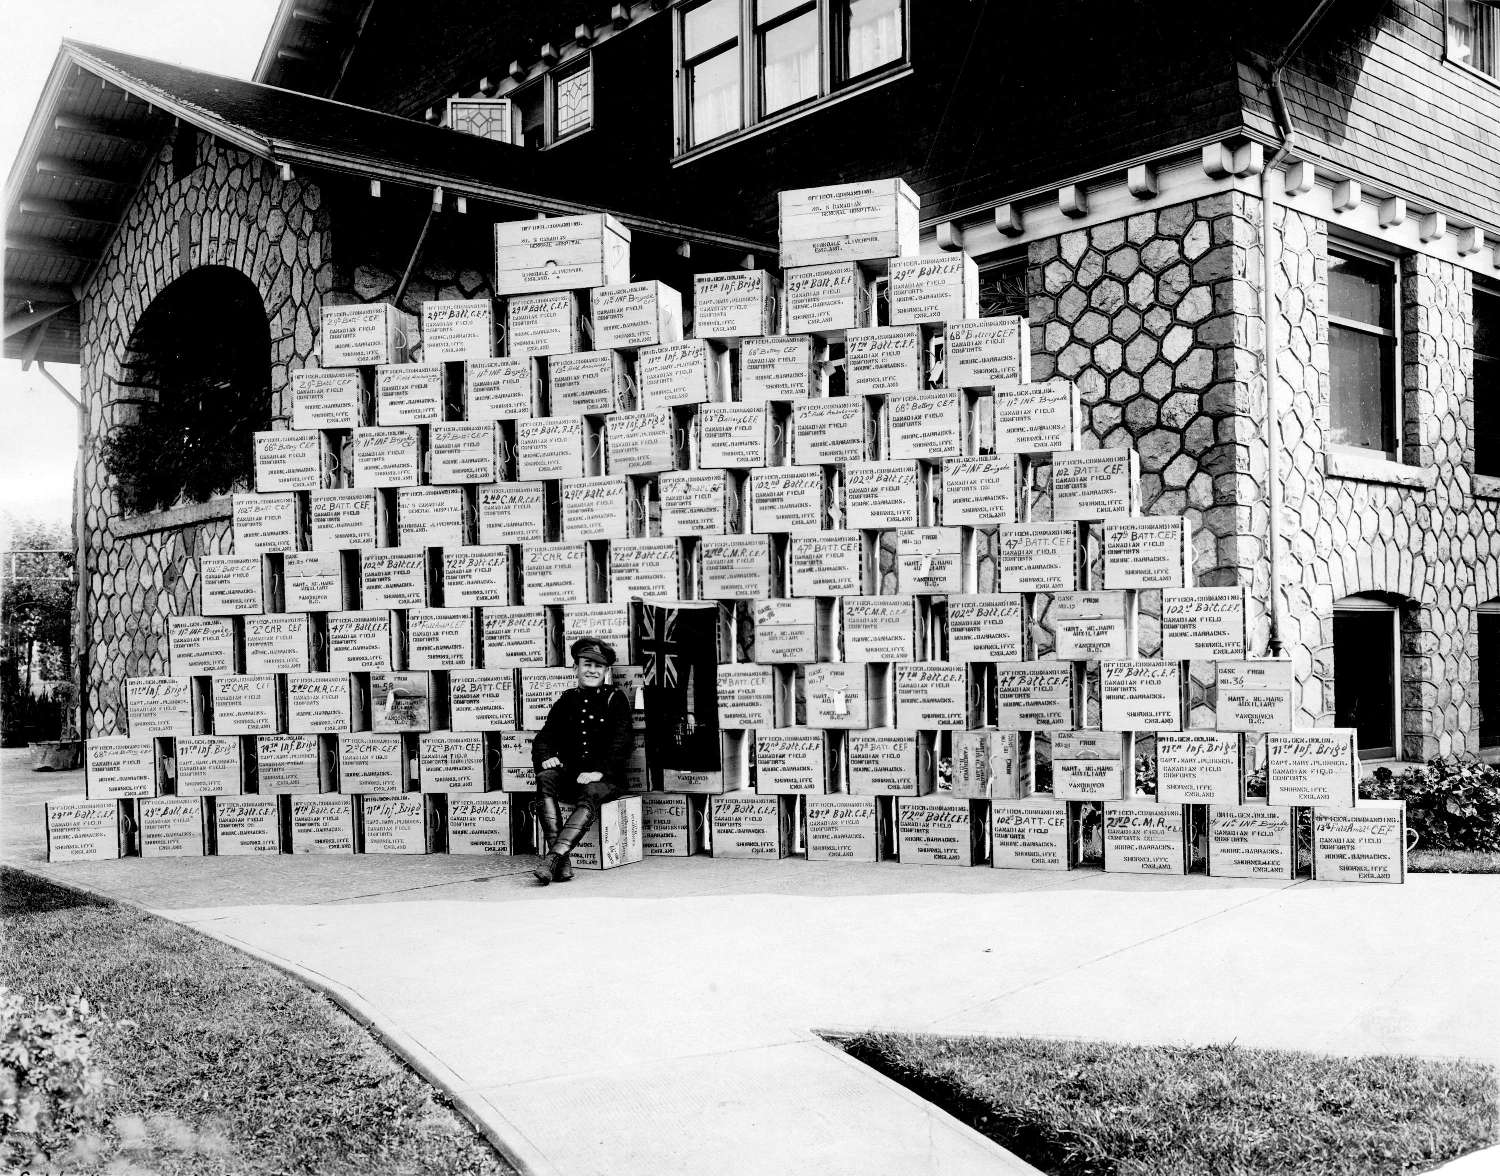 soldier in front of piled boxes